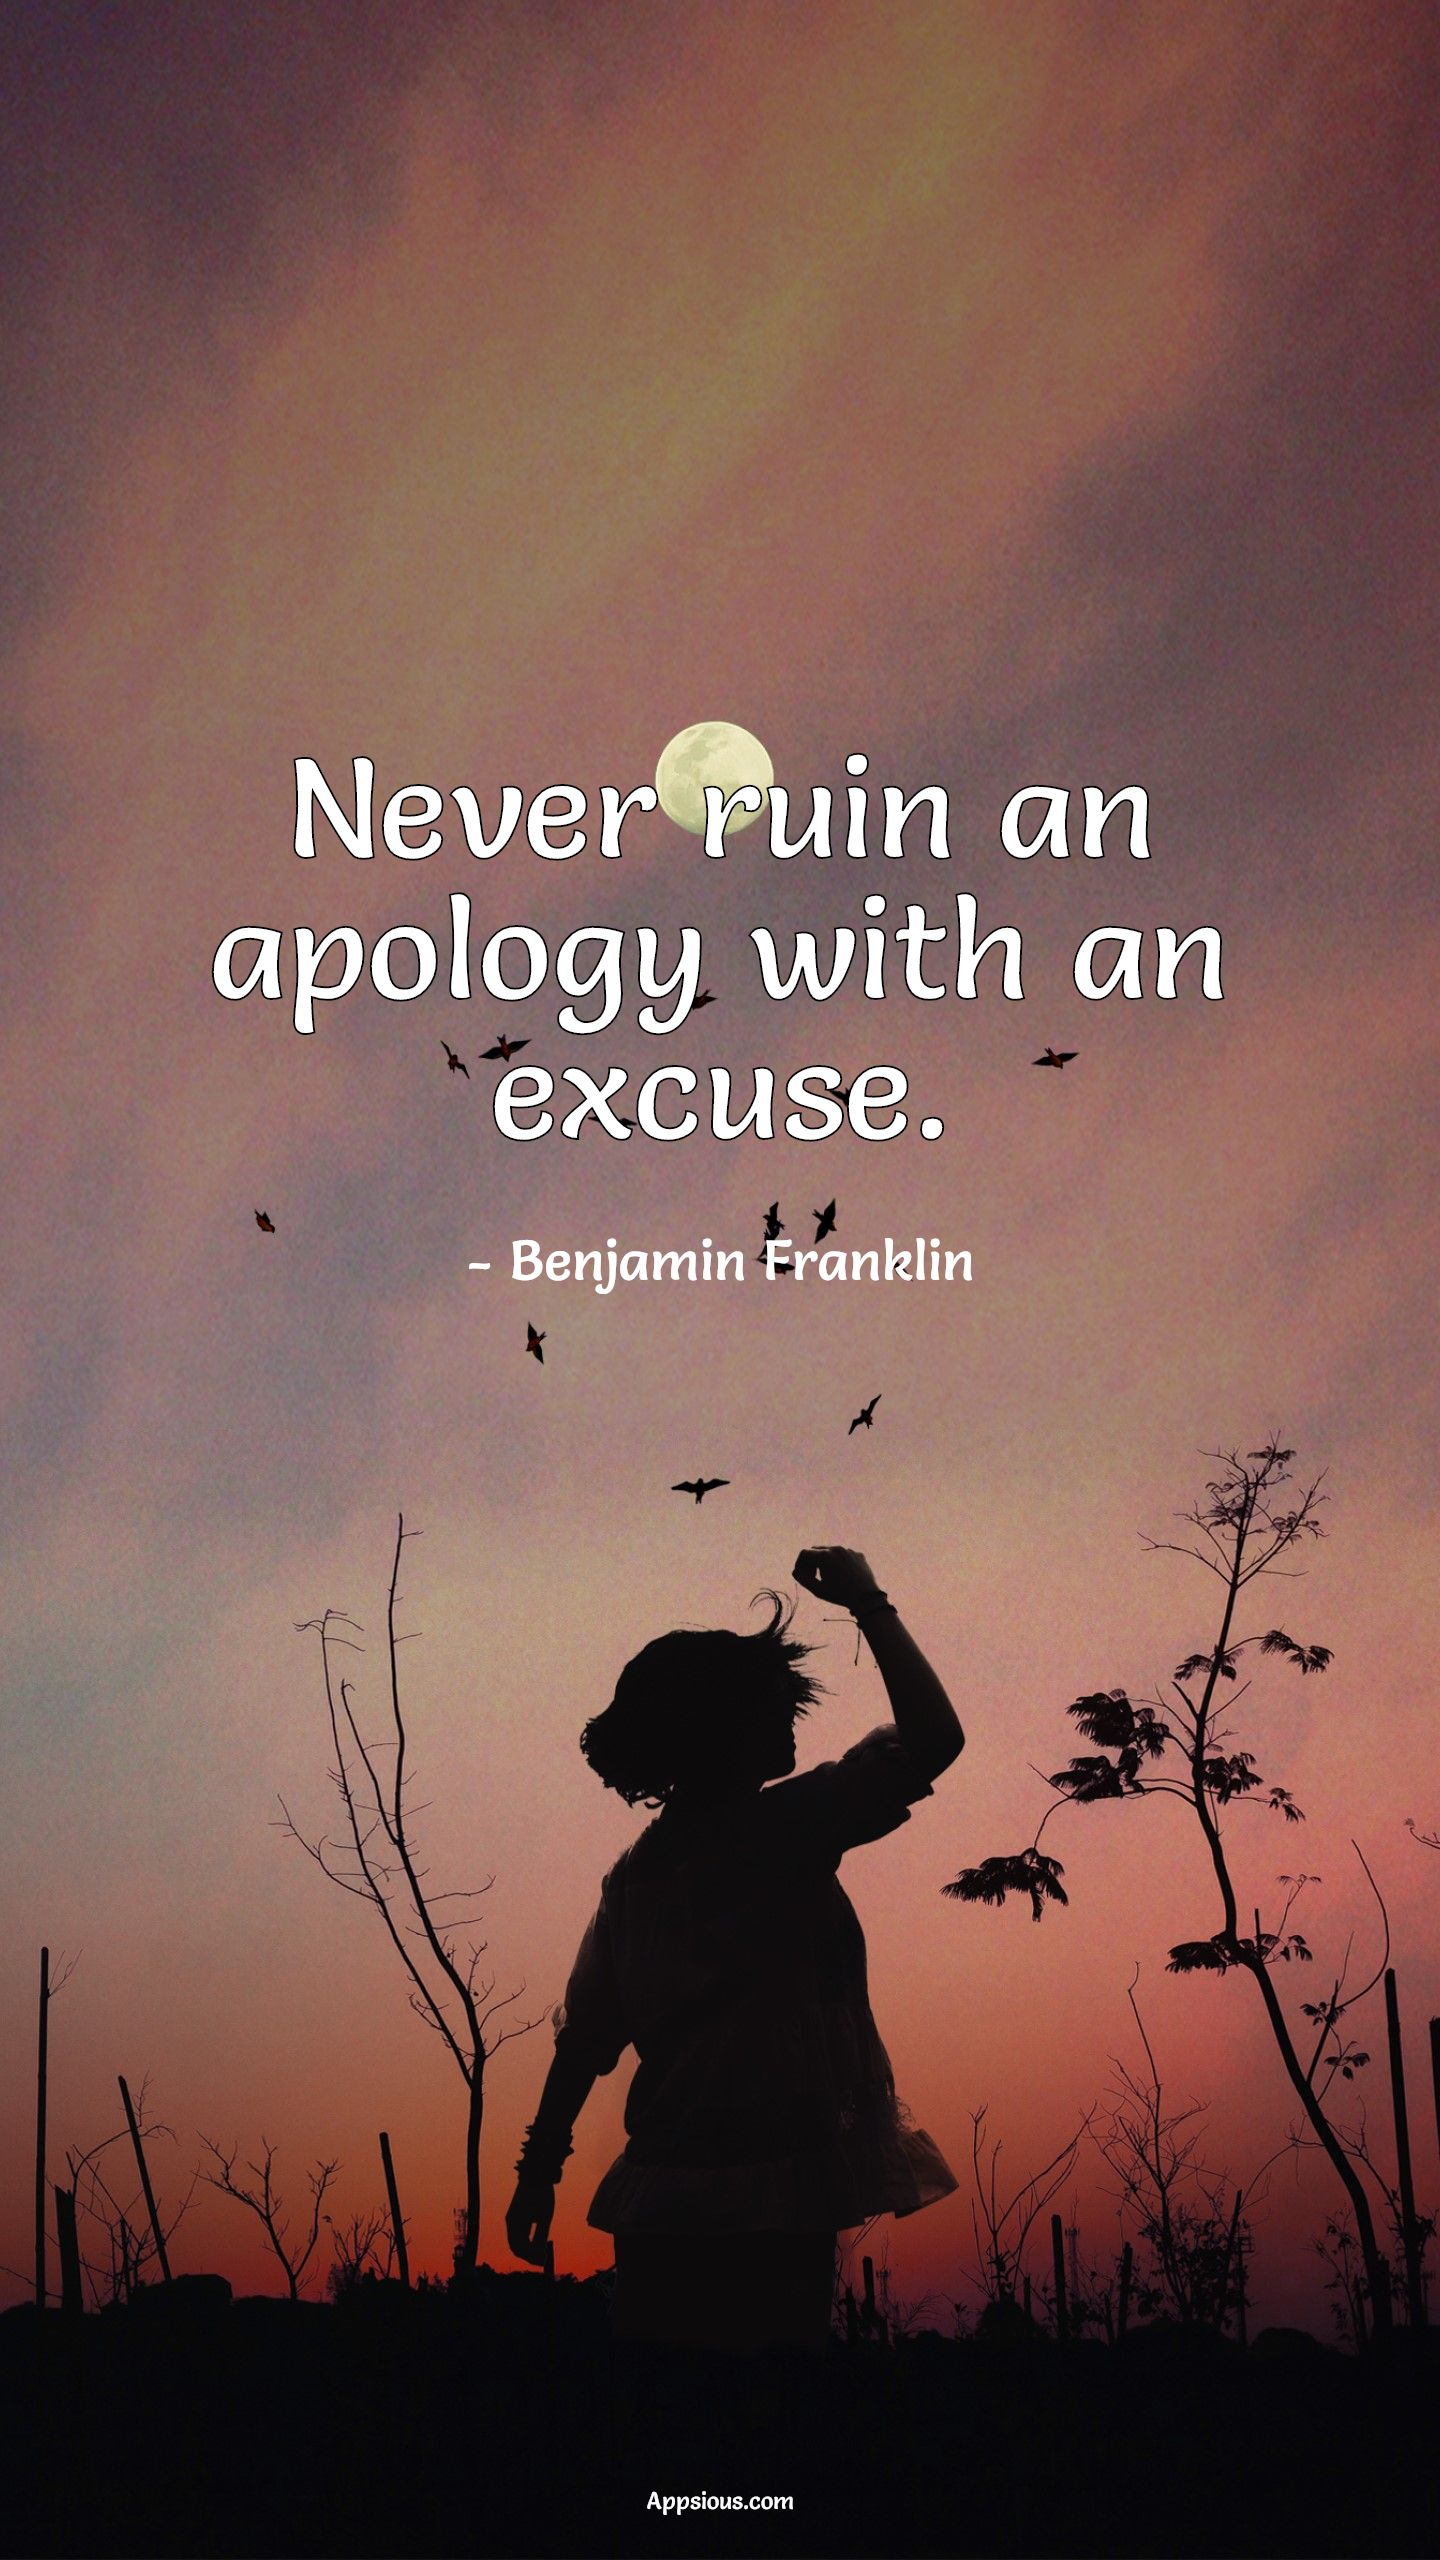 Never ruin an apology with an excuse.